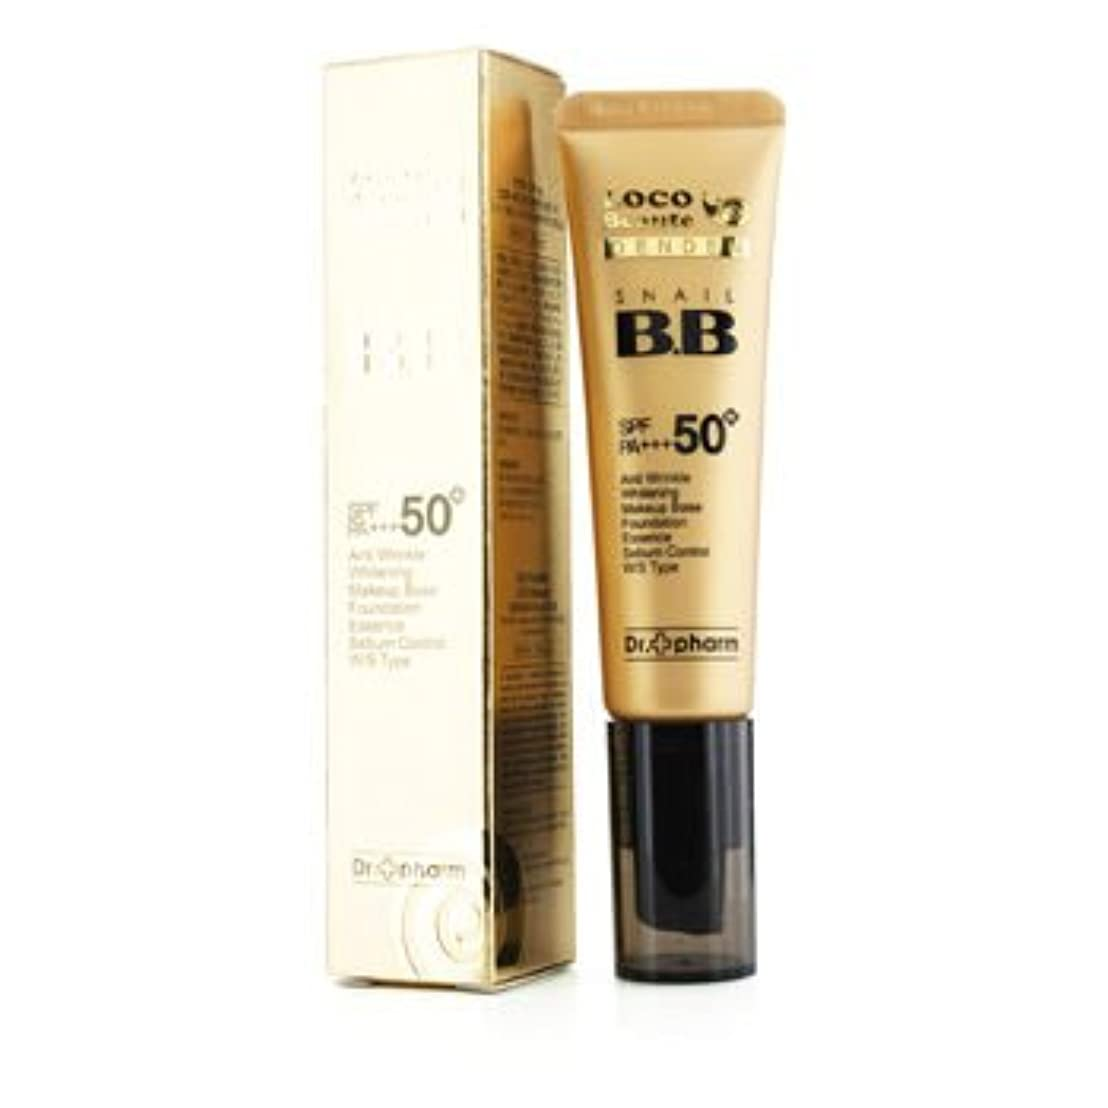 救援学生罪Dr. Pharm LOCO Beaute DenDen Snail BB Cream SPF5030ml/1oz並行輸入品